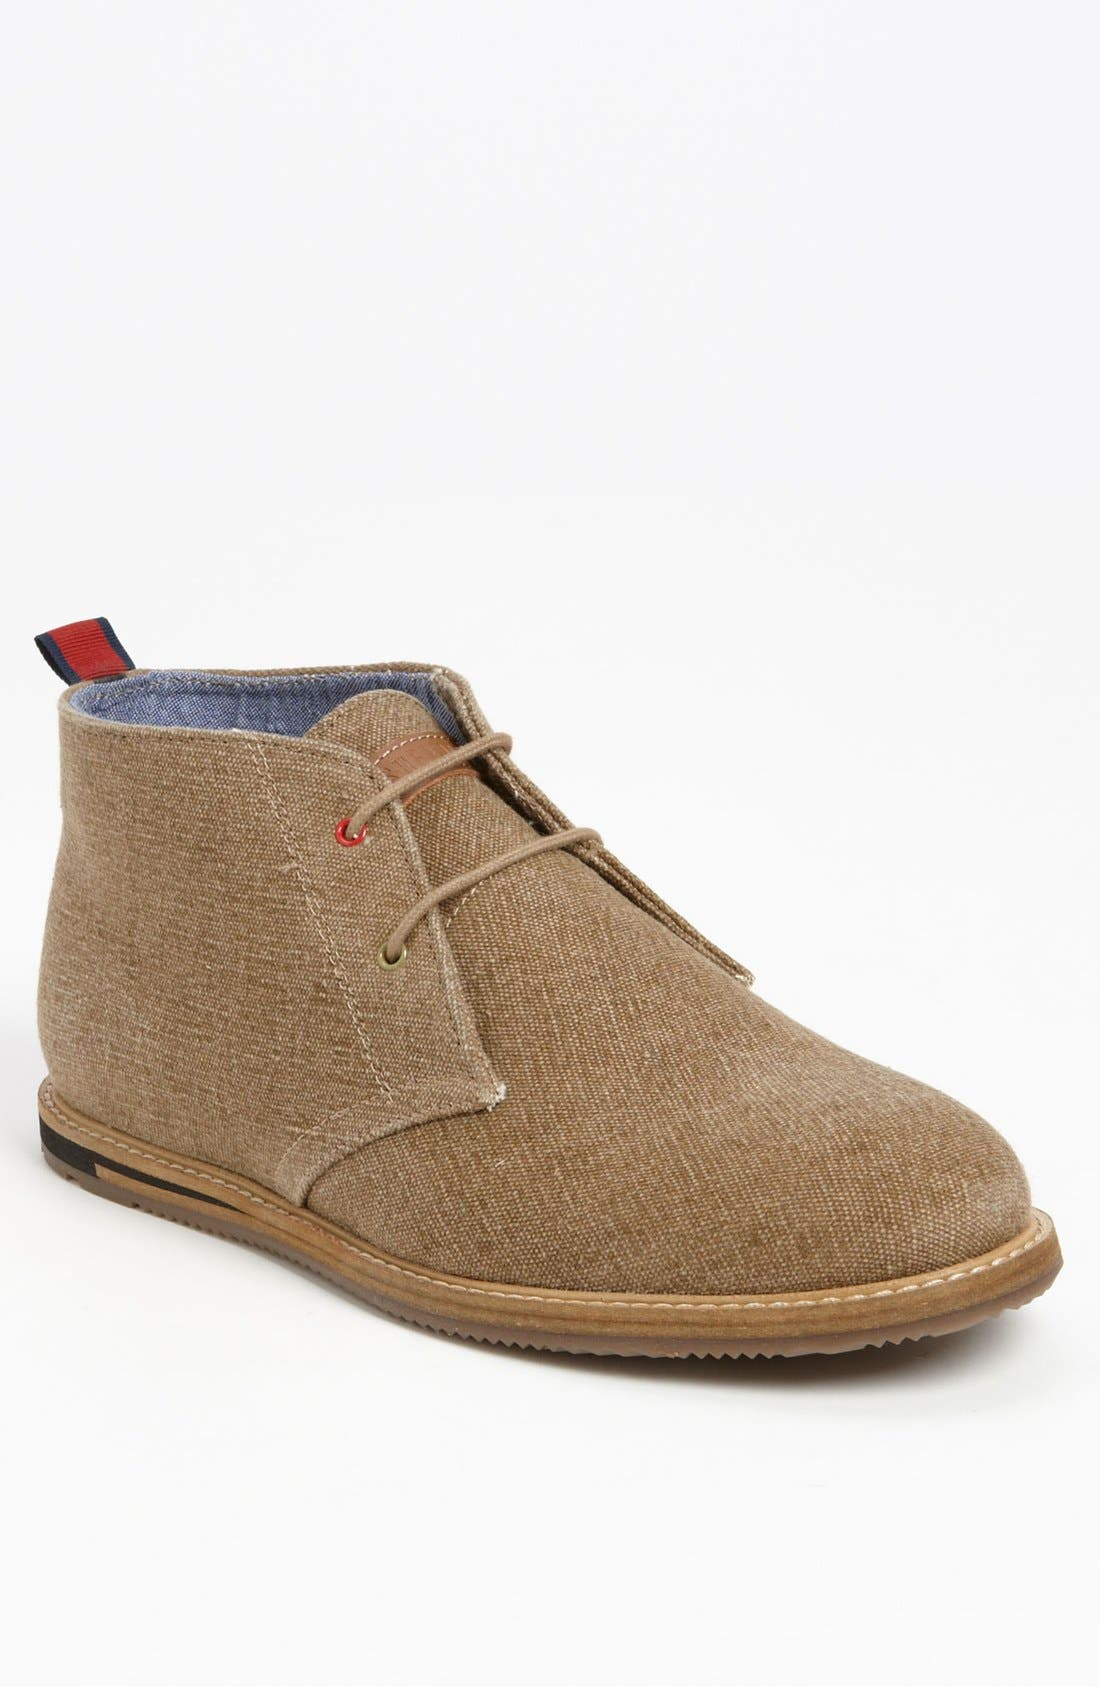 Main Image - Ben Sherman 'Aberdeen' Canvas Chukka Boot